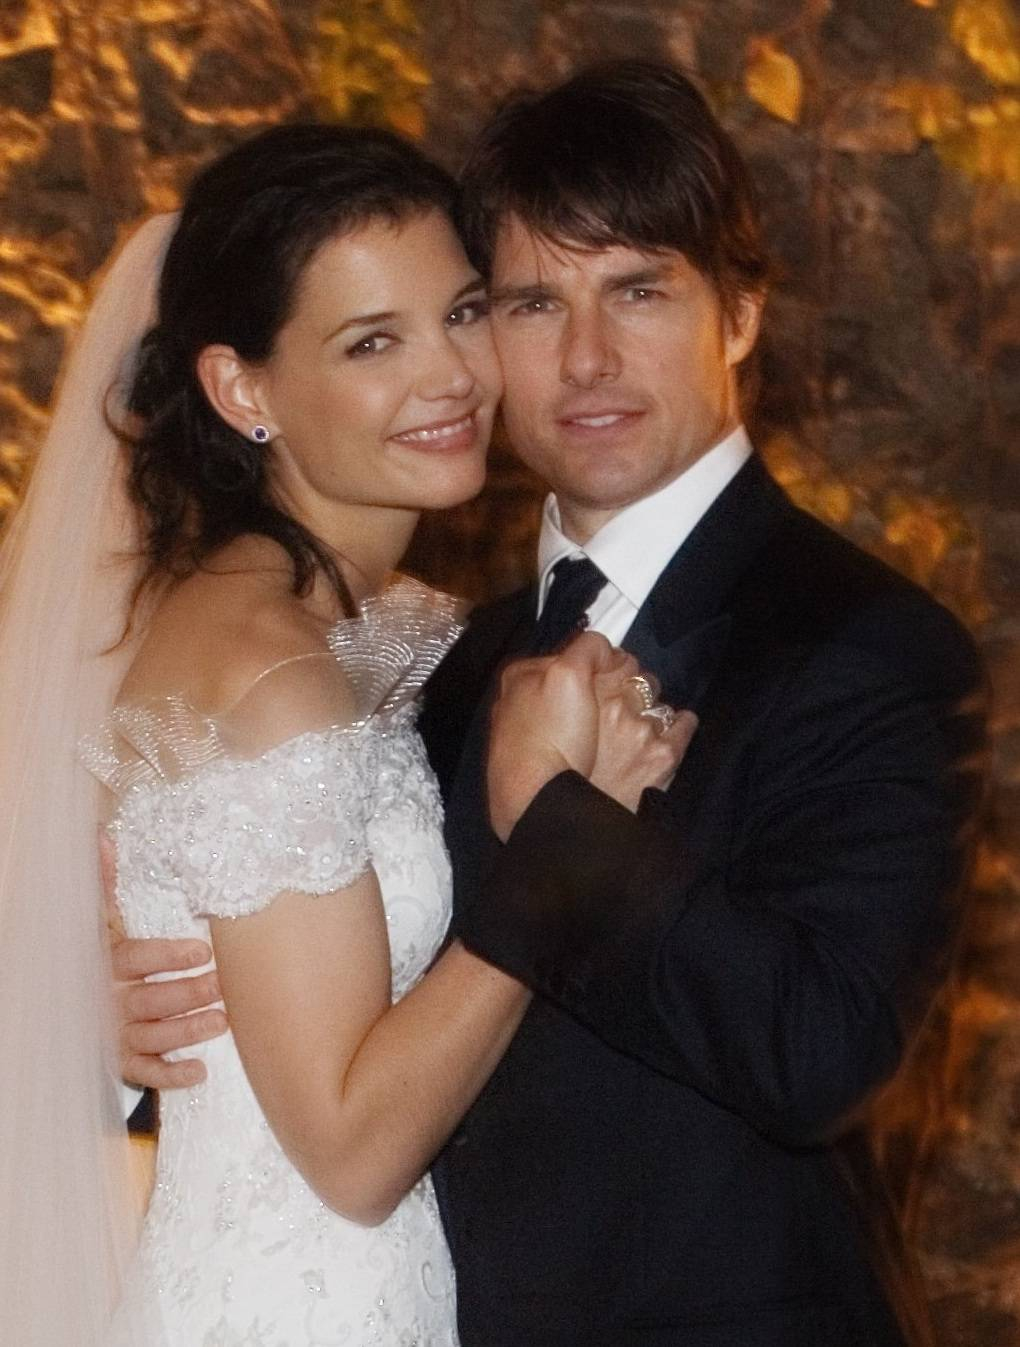 BRACCIANO, ITALY - NOVEMBER 18: In this handout photo provided by Robert Evans, Tom Cruise and Katie Holmes pose together at Castello Odescalchi on their wedding day November 18, 2006 in Bracciano, near Rome, Italy. (Photo by Robert Evans/Handout via Getty Images)